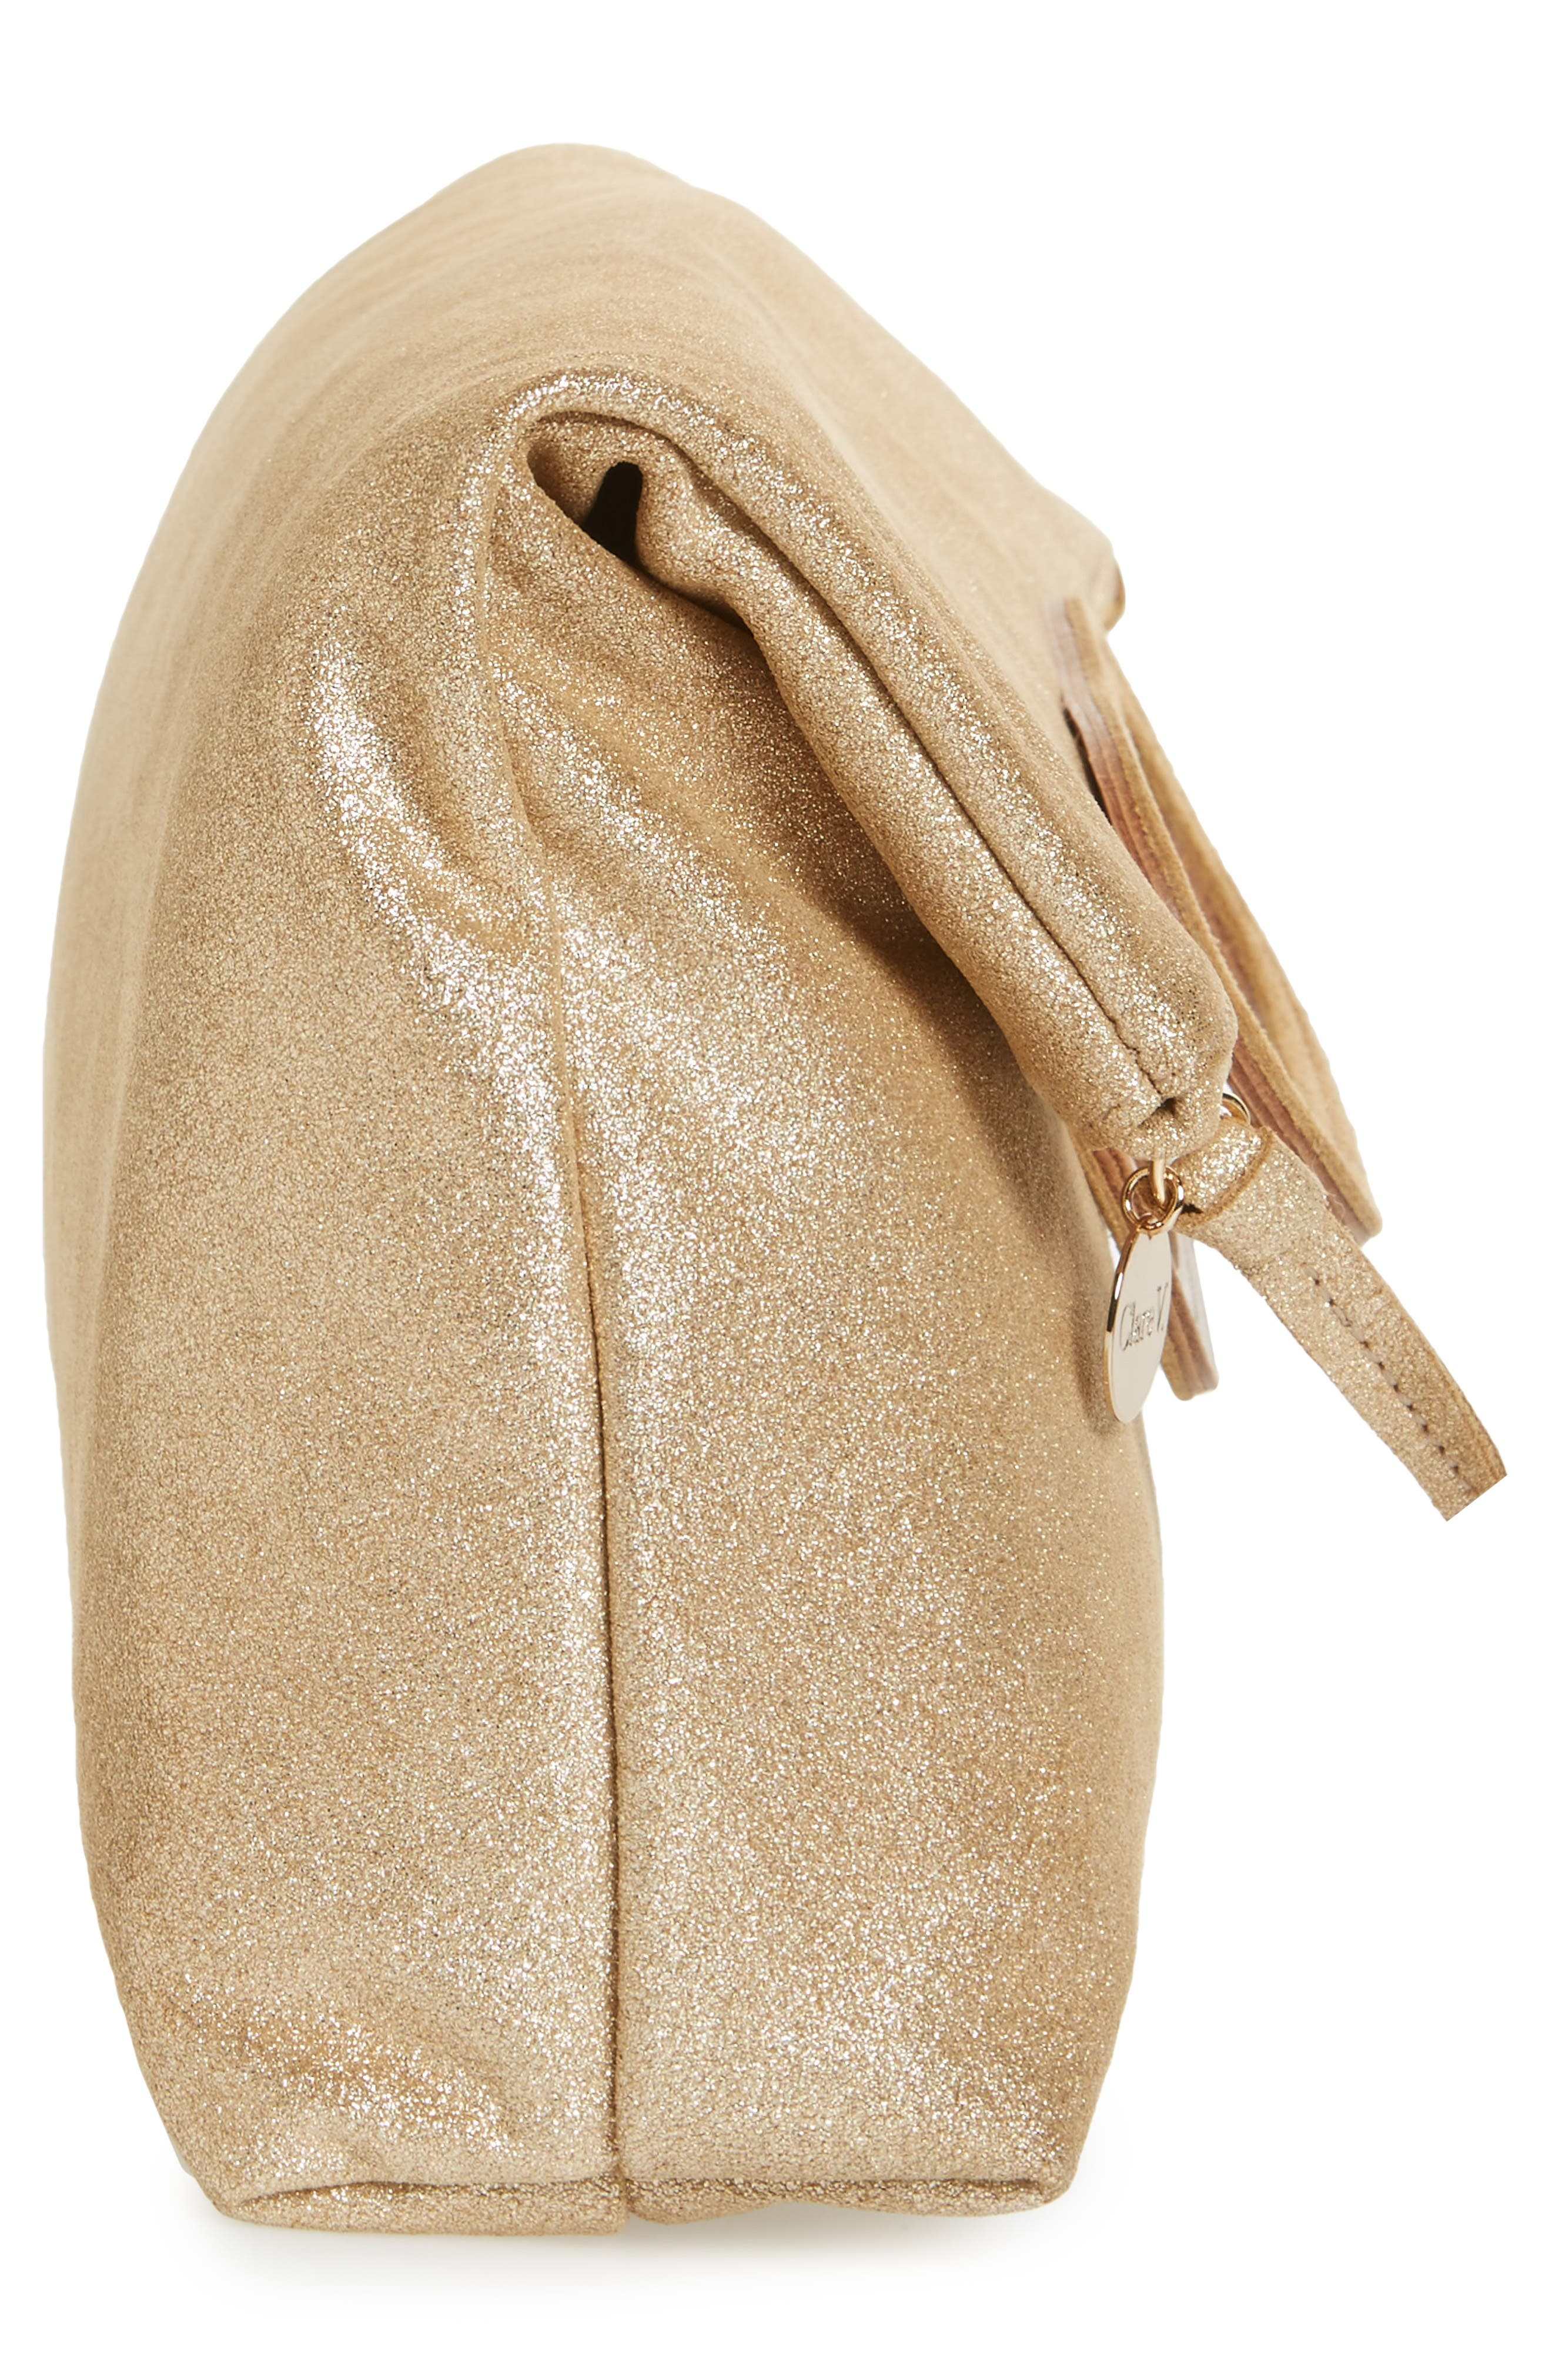 Marcelle Maison Leather Tote,                             Alternate thumbnail 5, color,                             Gold Shimmer Suede